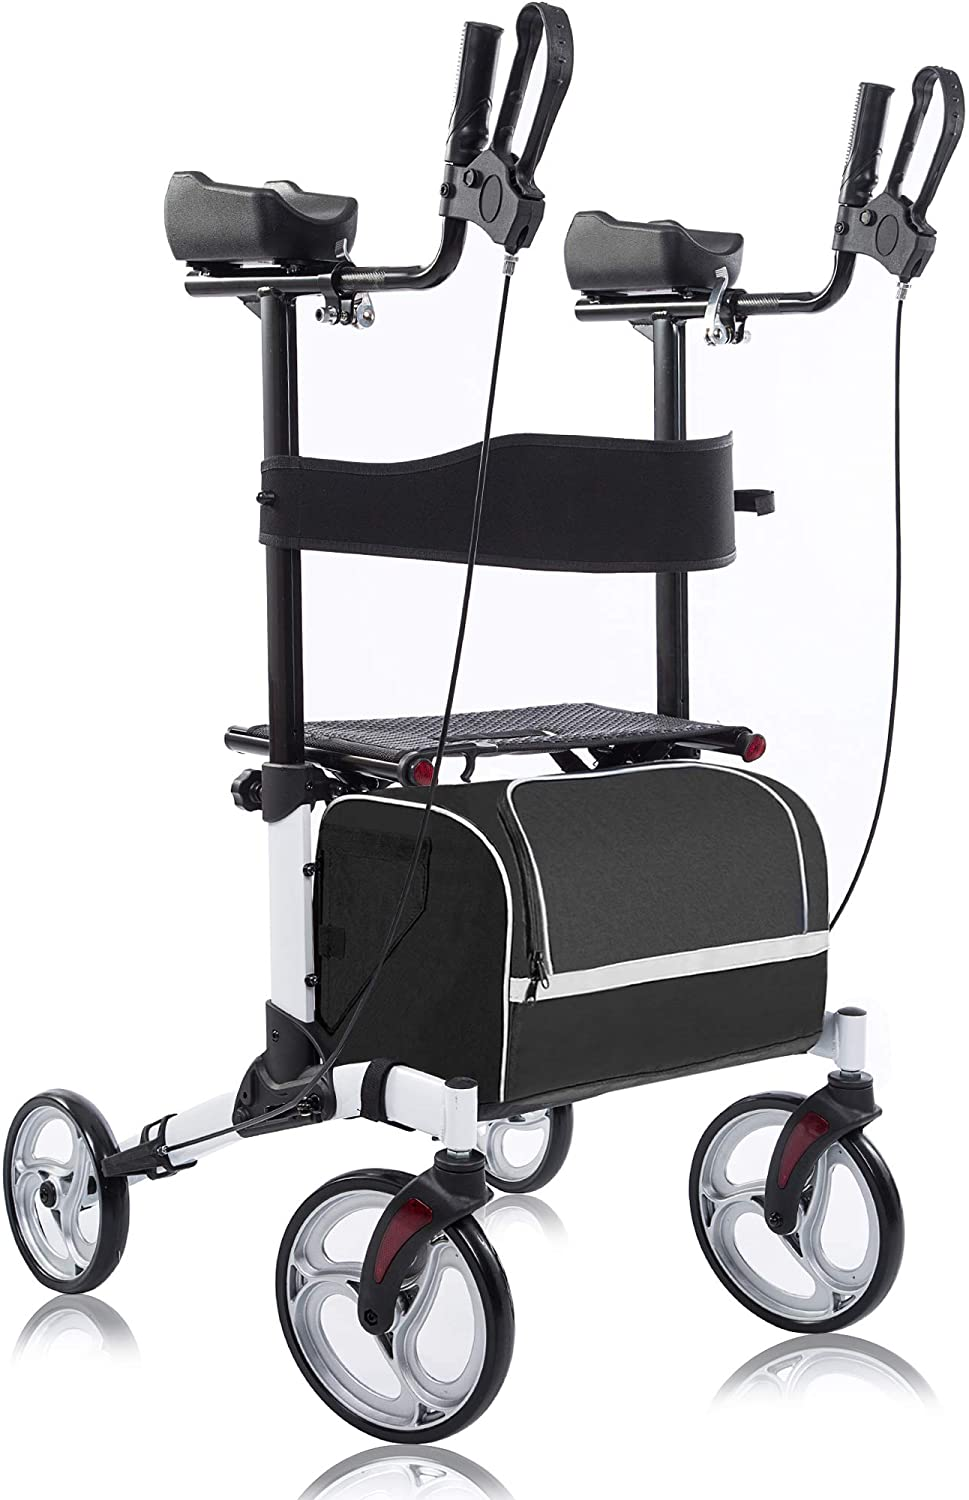 Review of BEYOUR WALKER's Upright Rollator Walker with 10A Front Wheels